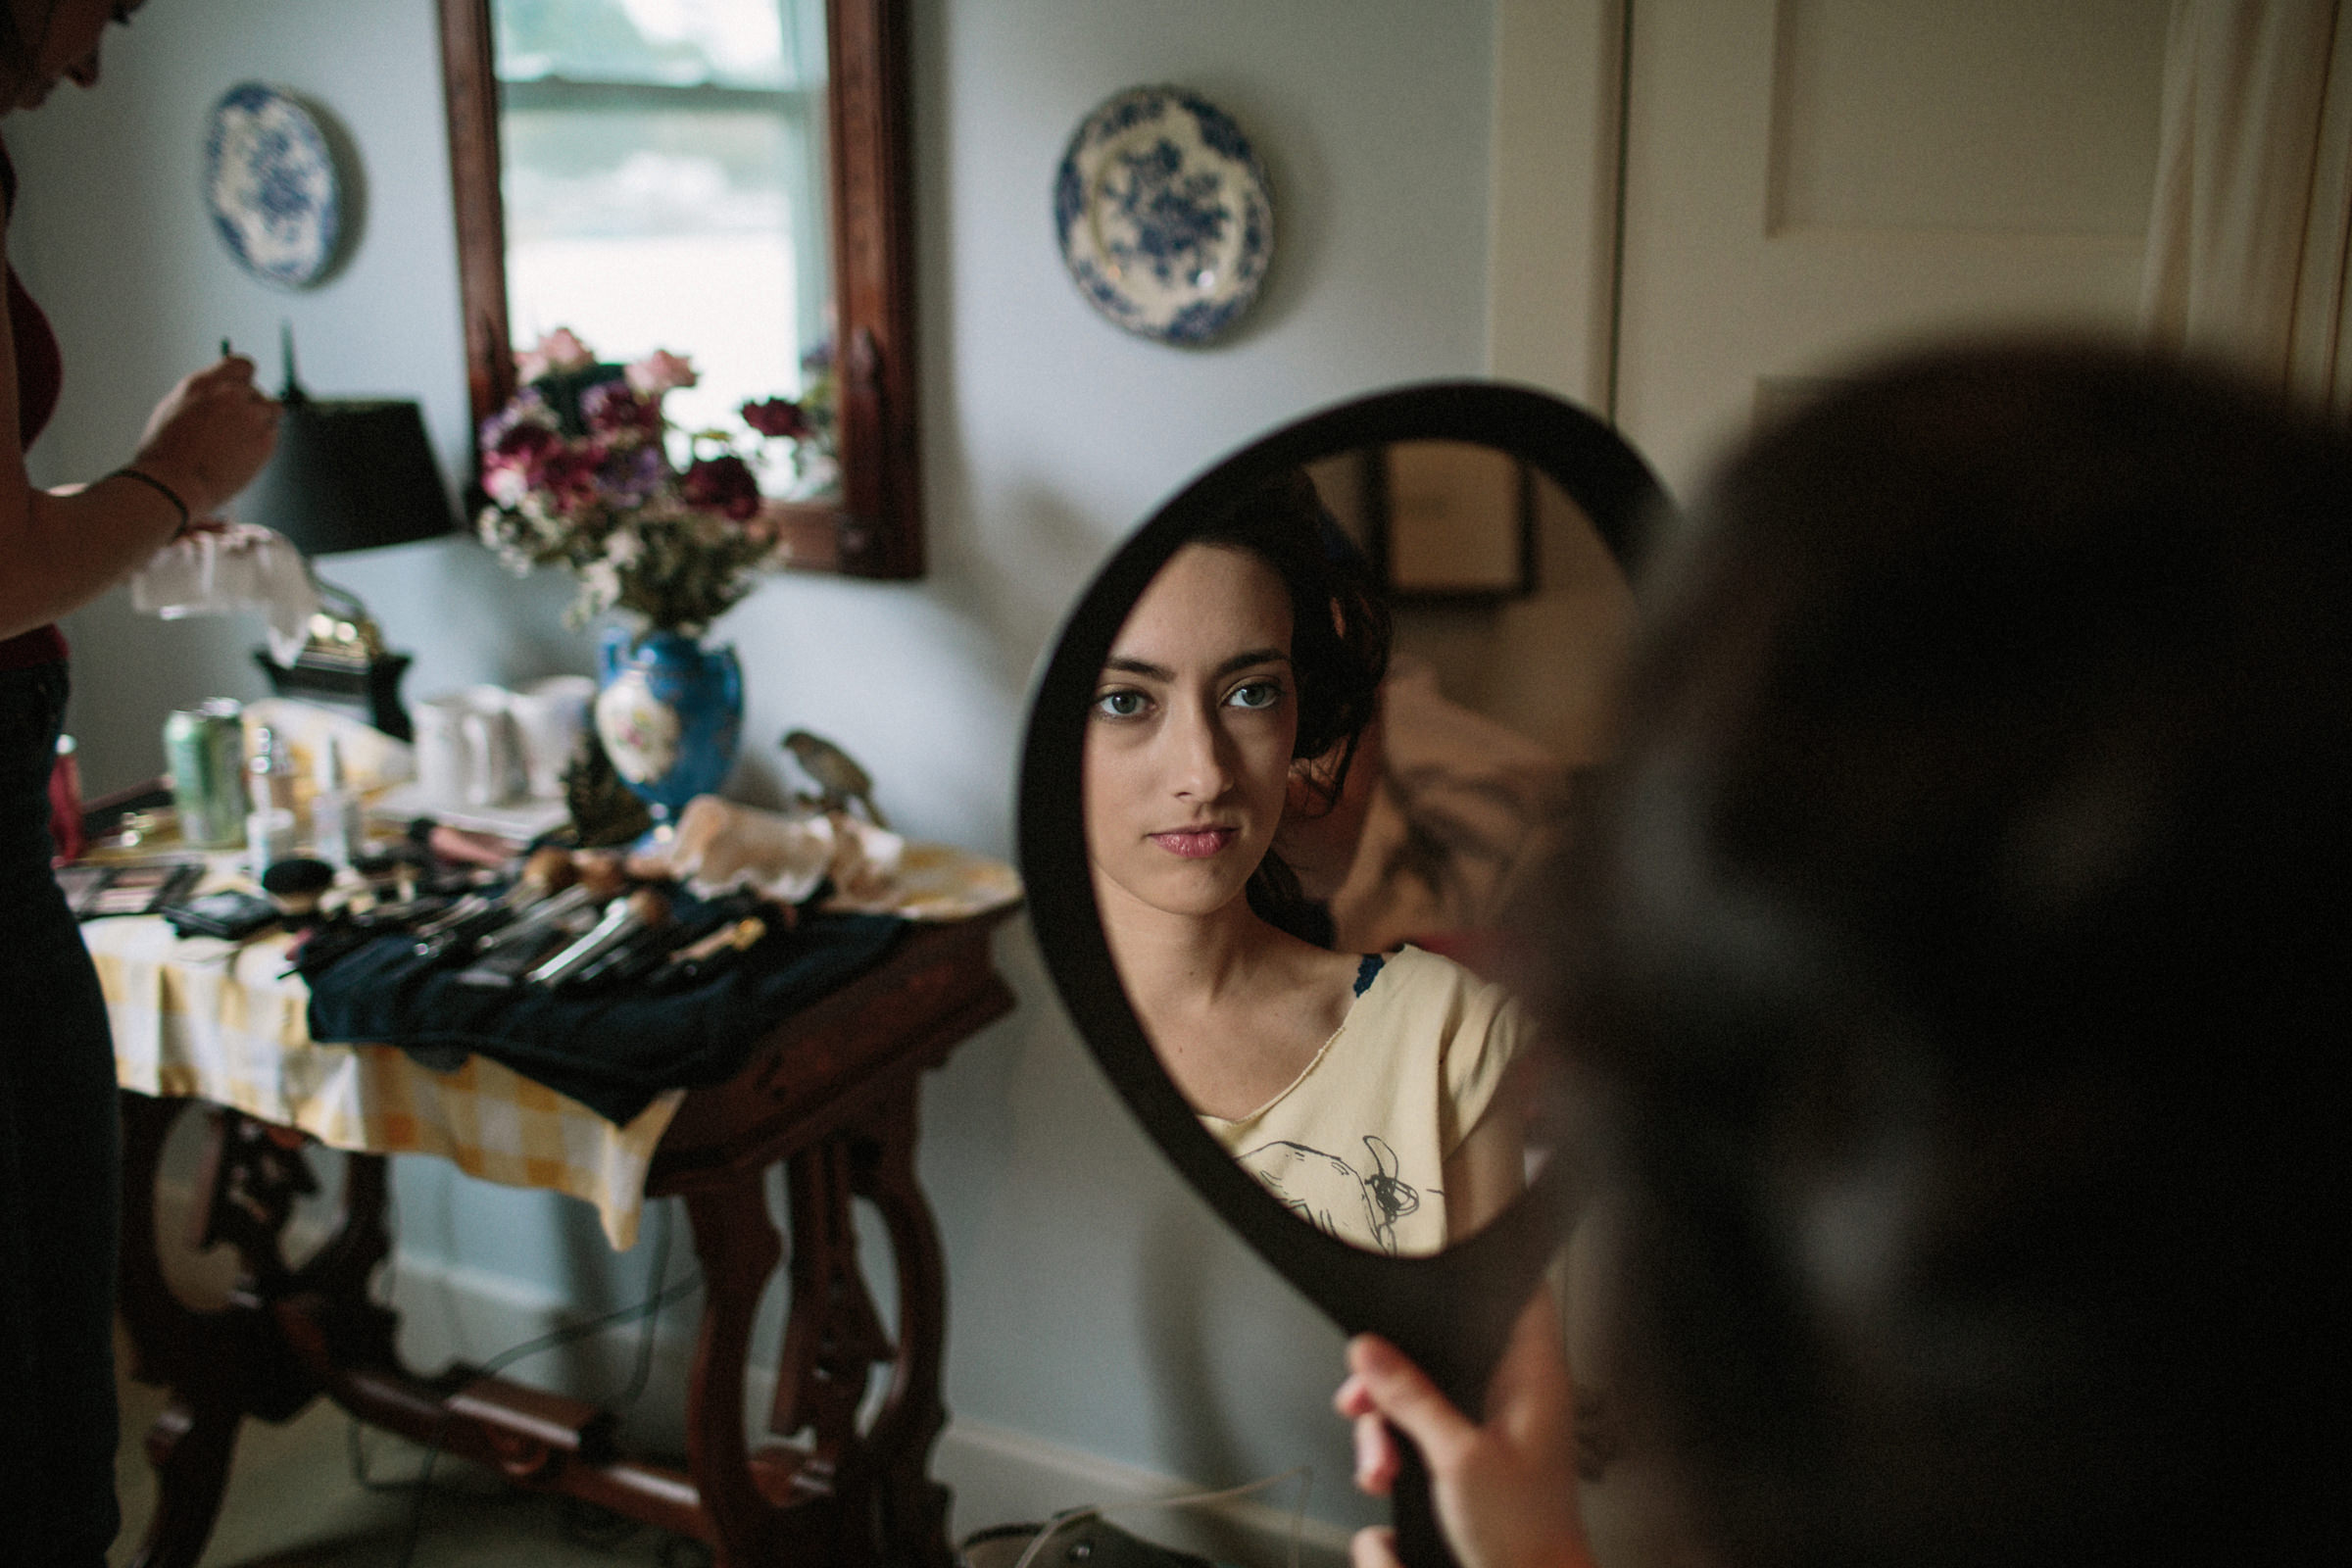 Bride getting ready reflected in hand mirror - photographed by Jonas Seaman